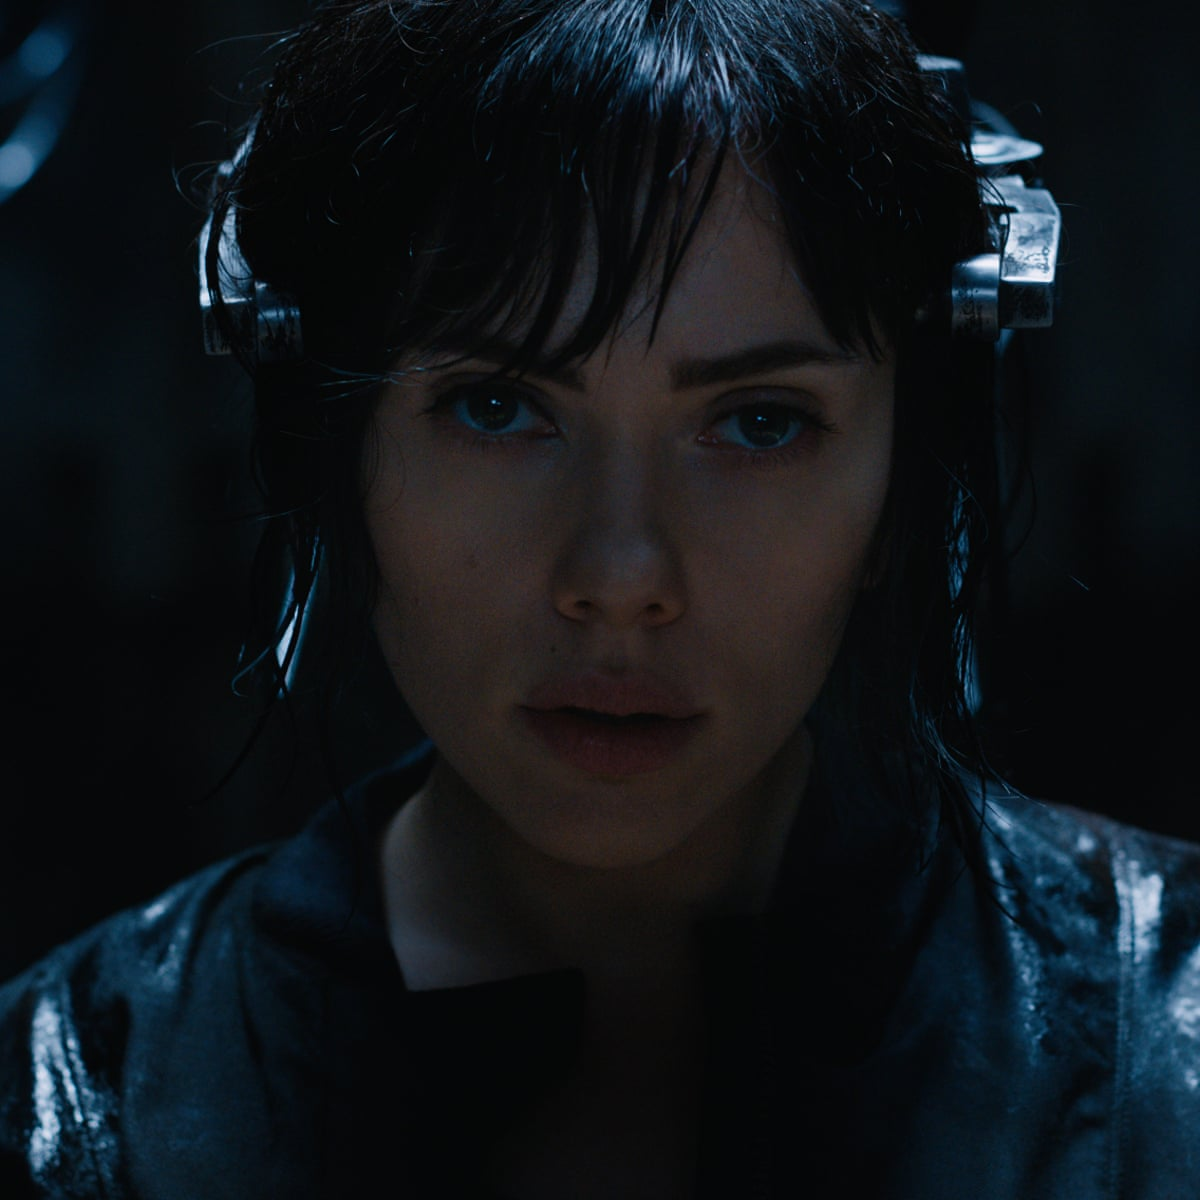 Original Ghost In The Shell Director No Basis For Whitewashing Anger Film The Guardian